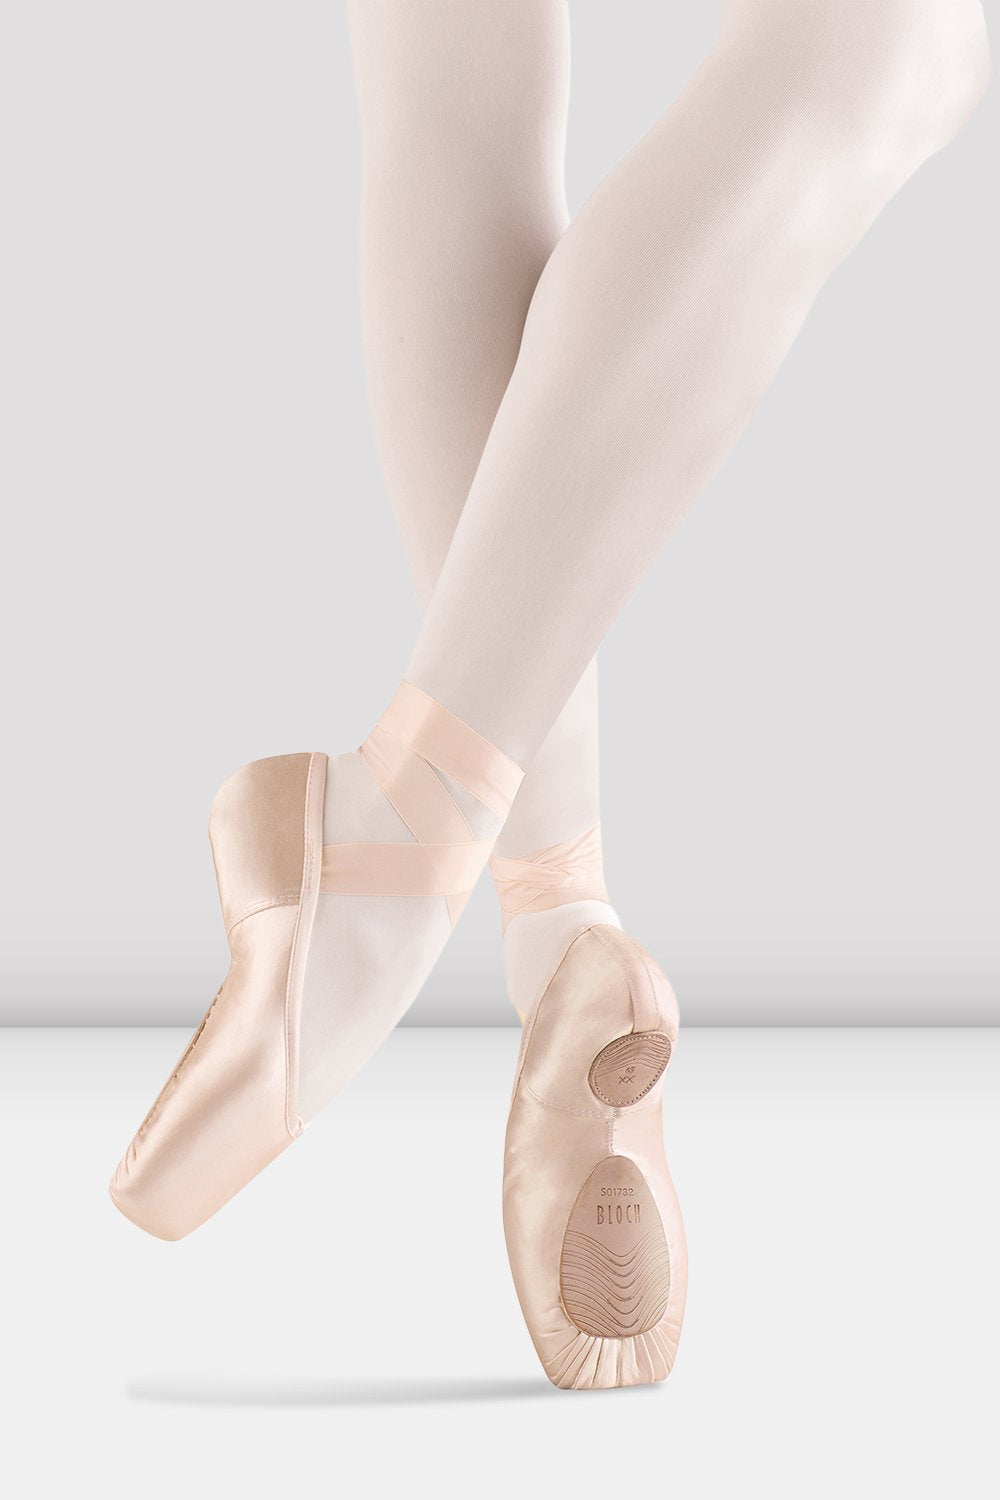 Dramatica Stretch Axis Pointe Shoes - BLOCH US